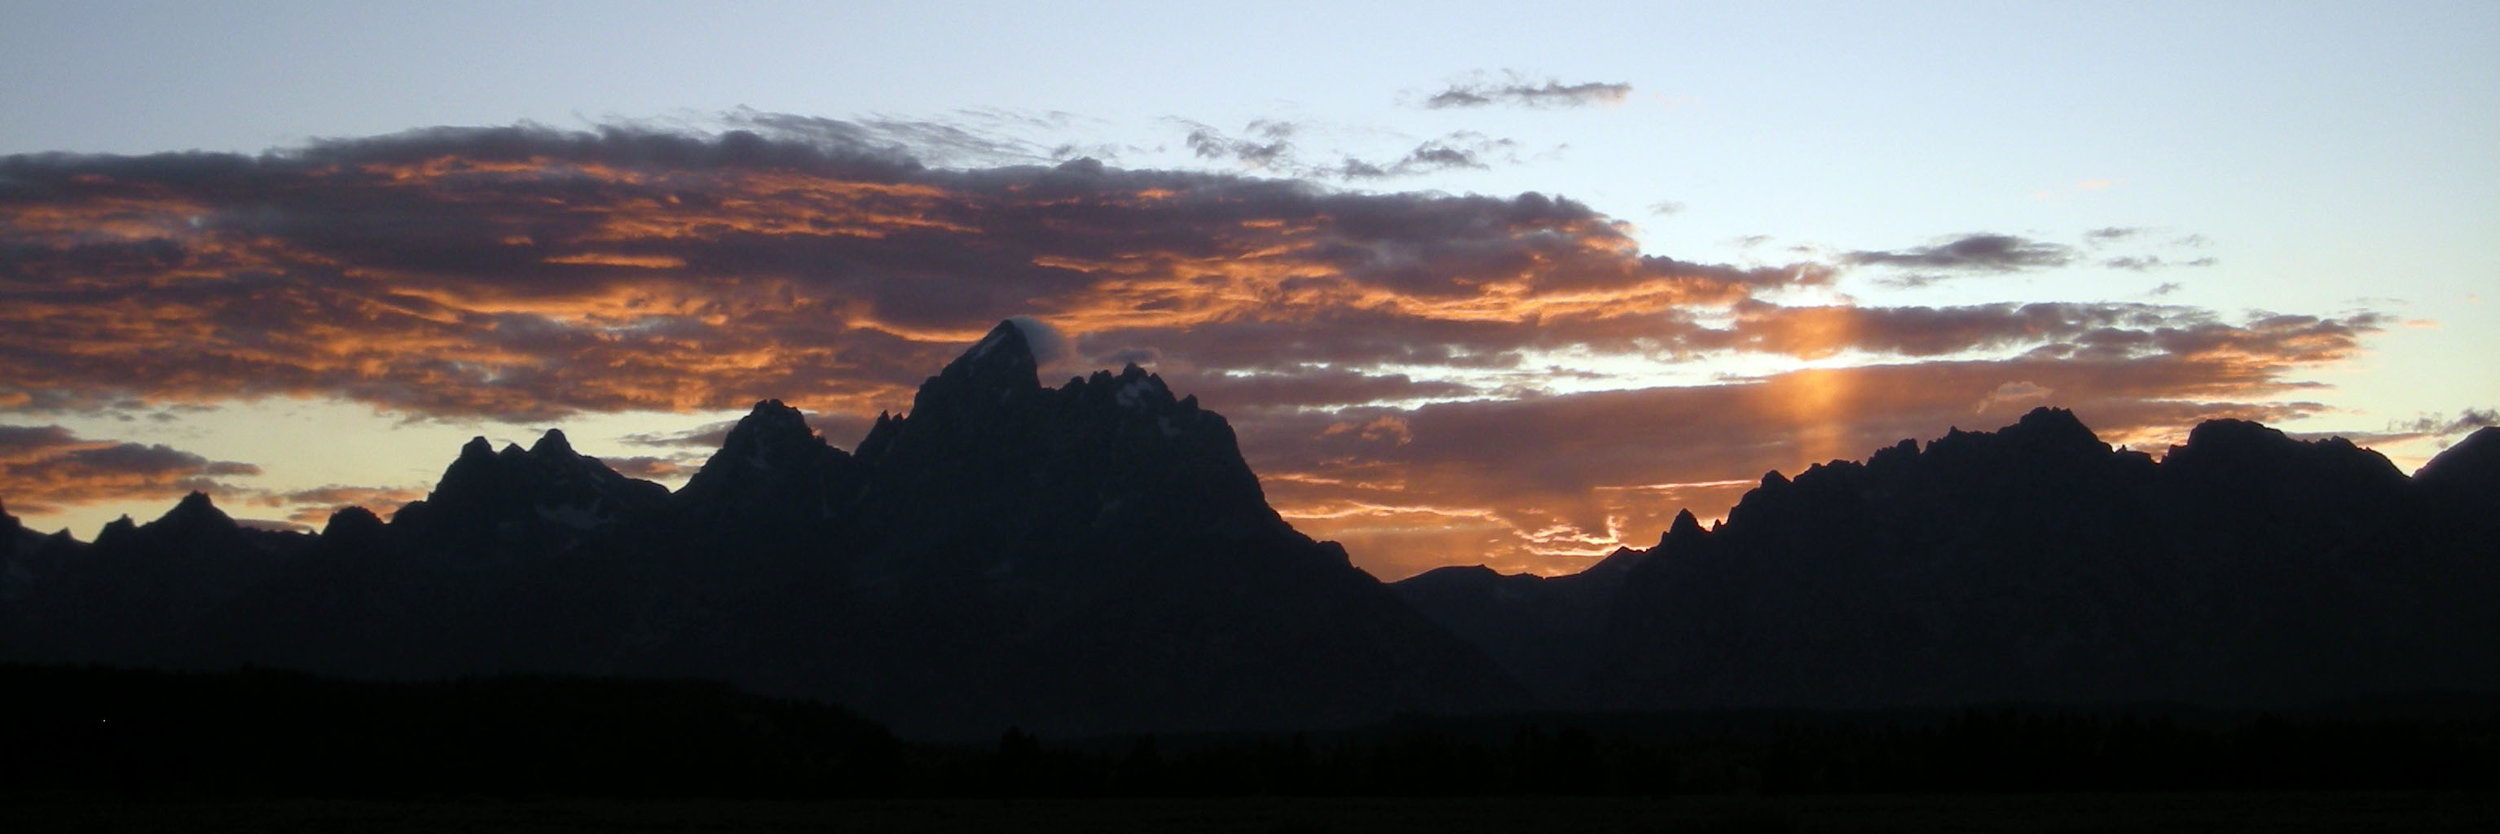 Grand Tetons sunset 2.jpg